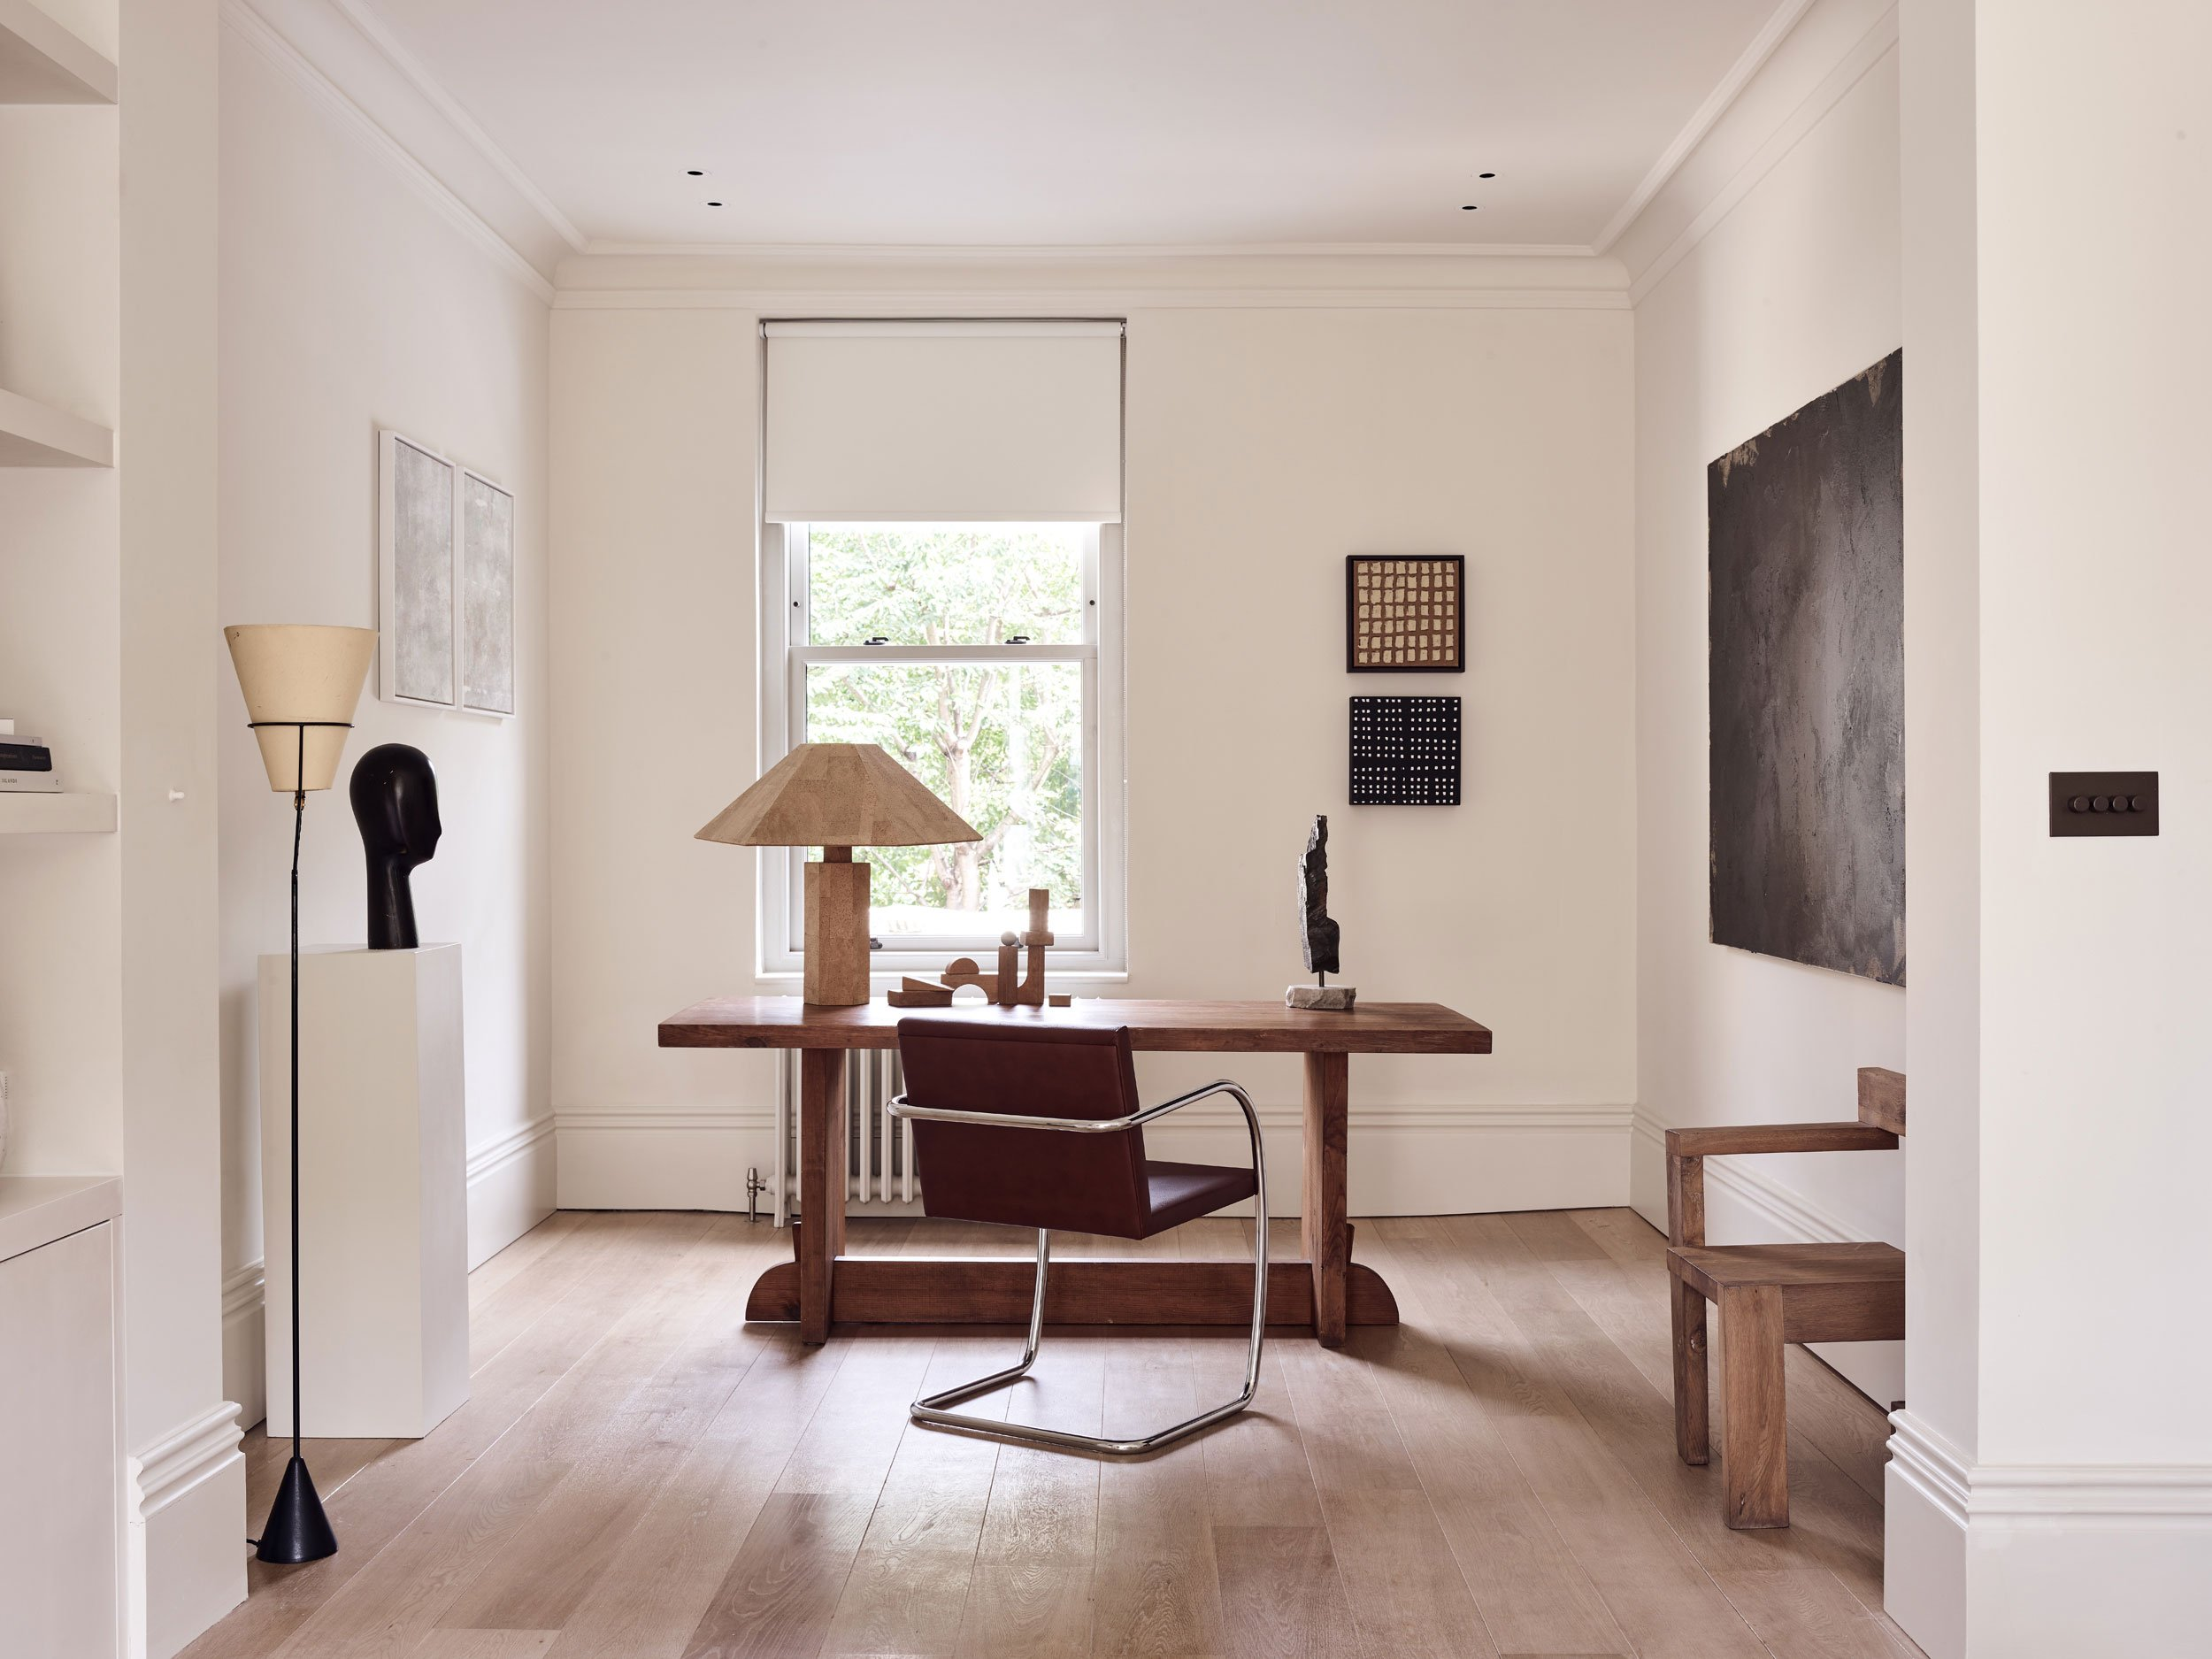 The home office features a chic wooden desk and a leather chair plus some art